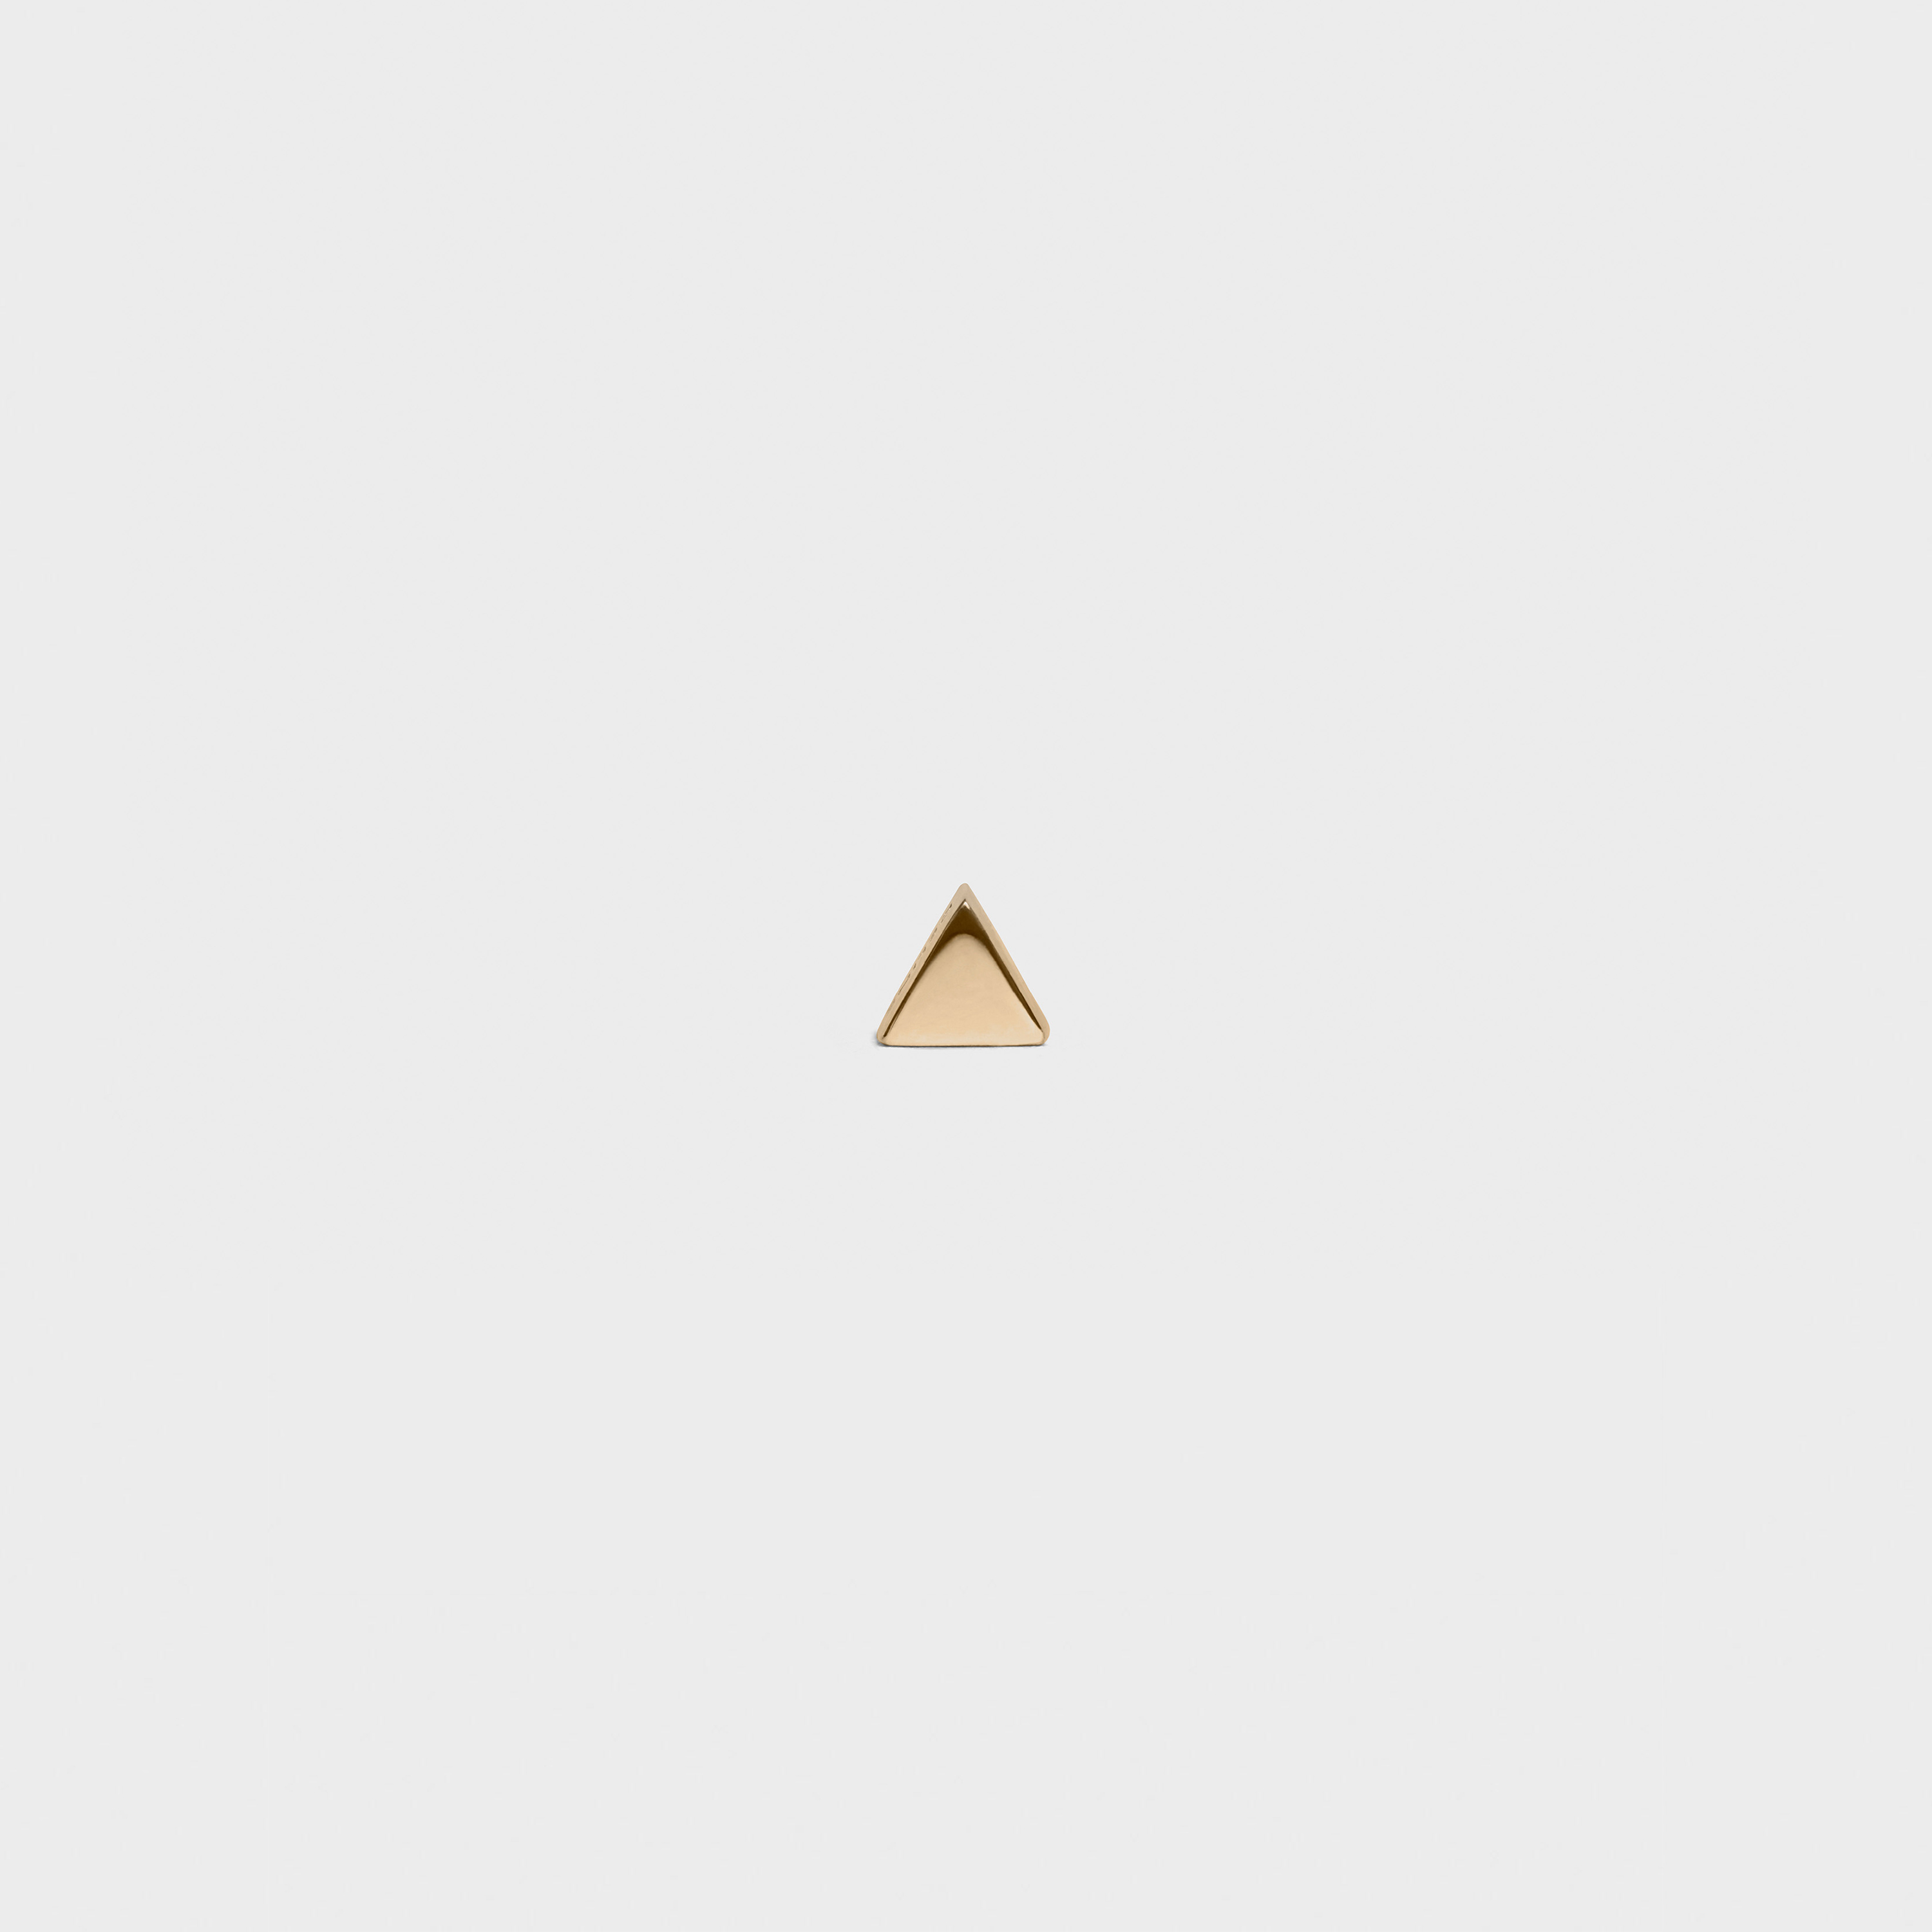 Celine Sentimental Triangle Stud in Yellow Gold | CELINE